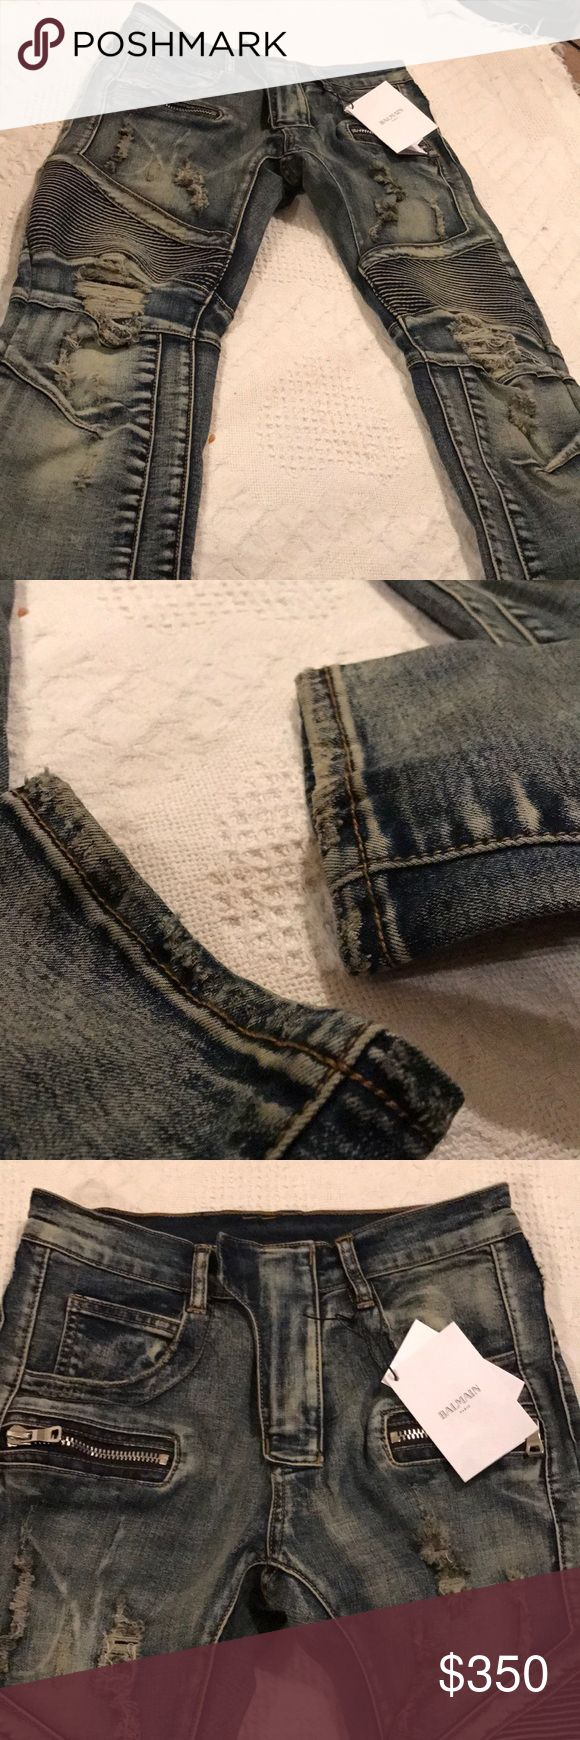 Balmain biker jeans Size 30 Balmain Biker Jeans Size 30 Partially Distressed Balmain Jeans Skinny